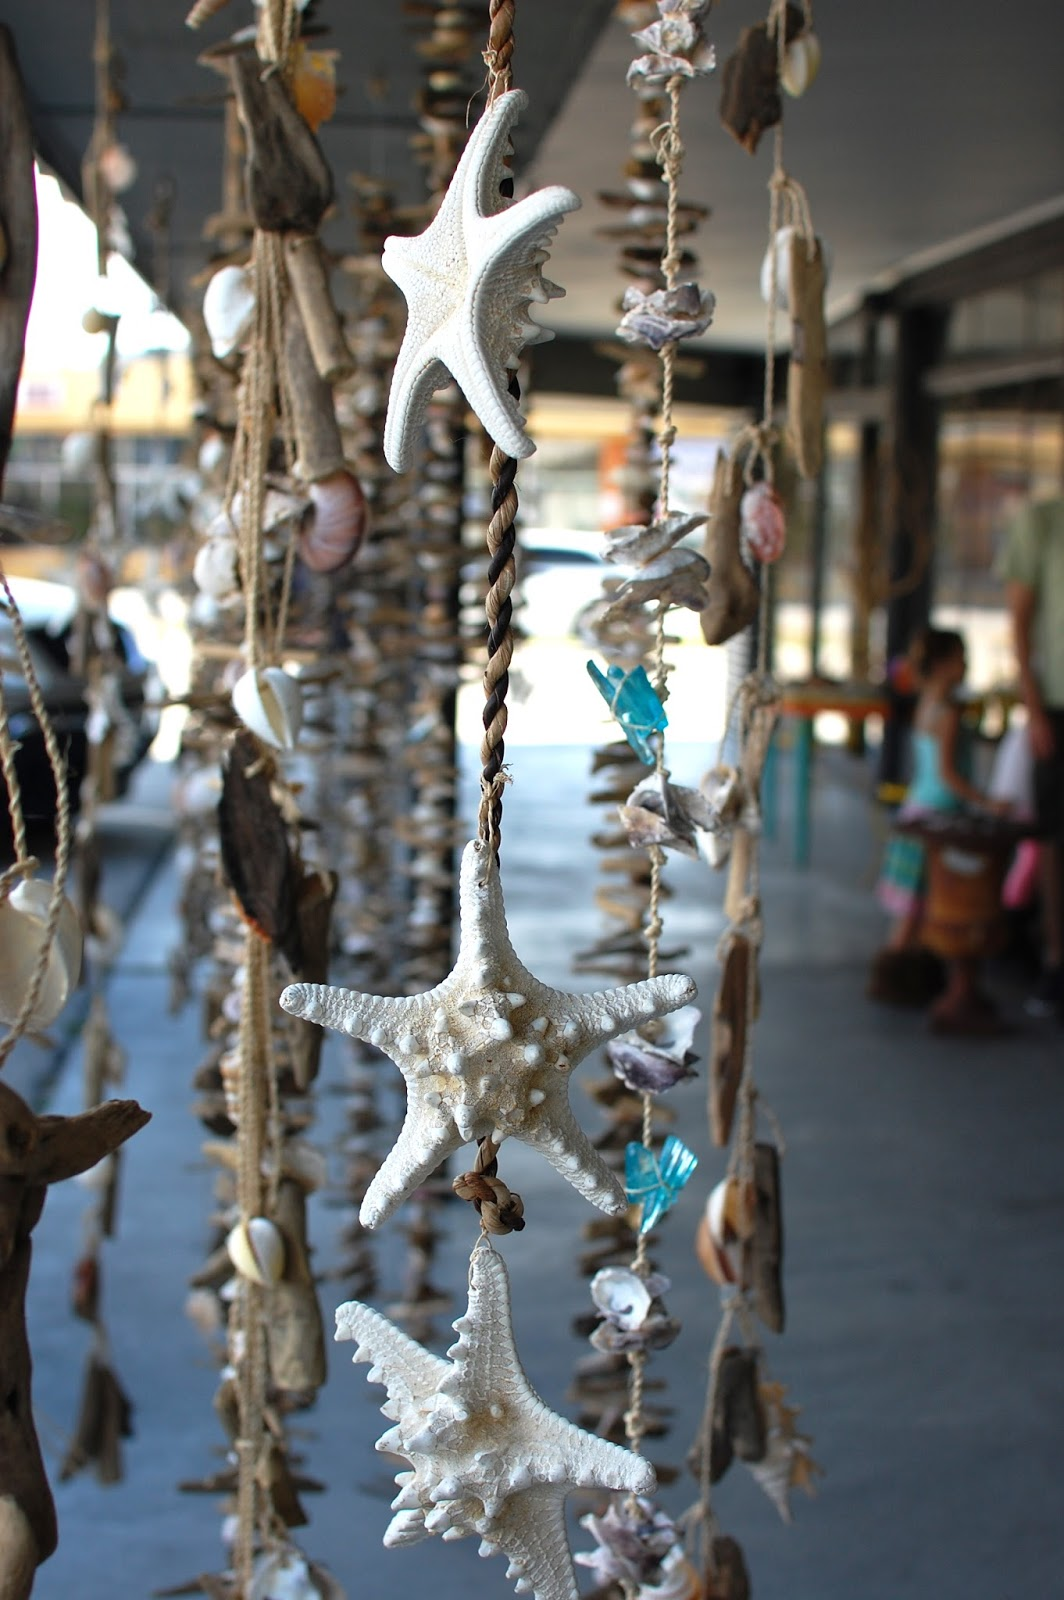 The Redolent Mermaid: Anna Maria Island: Sand Dollar Gift Shop